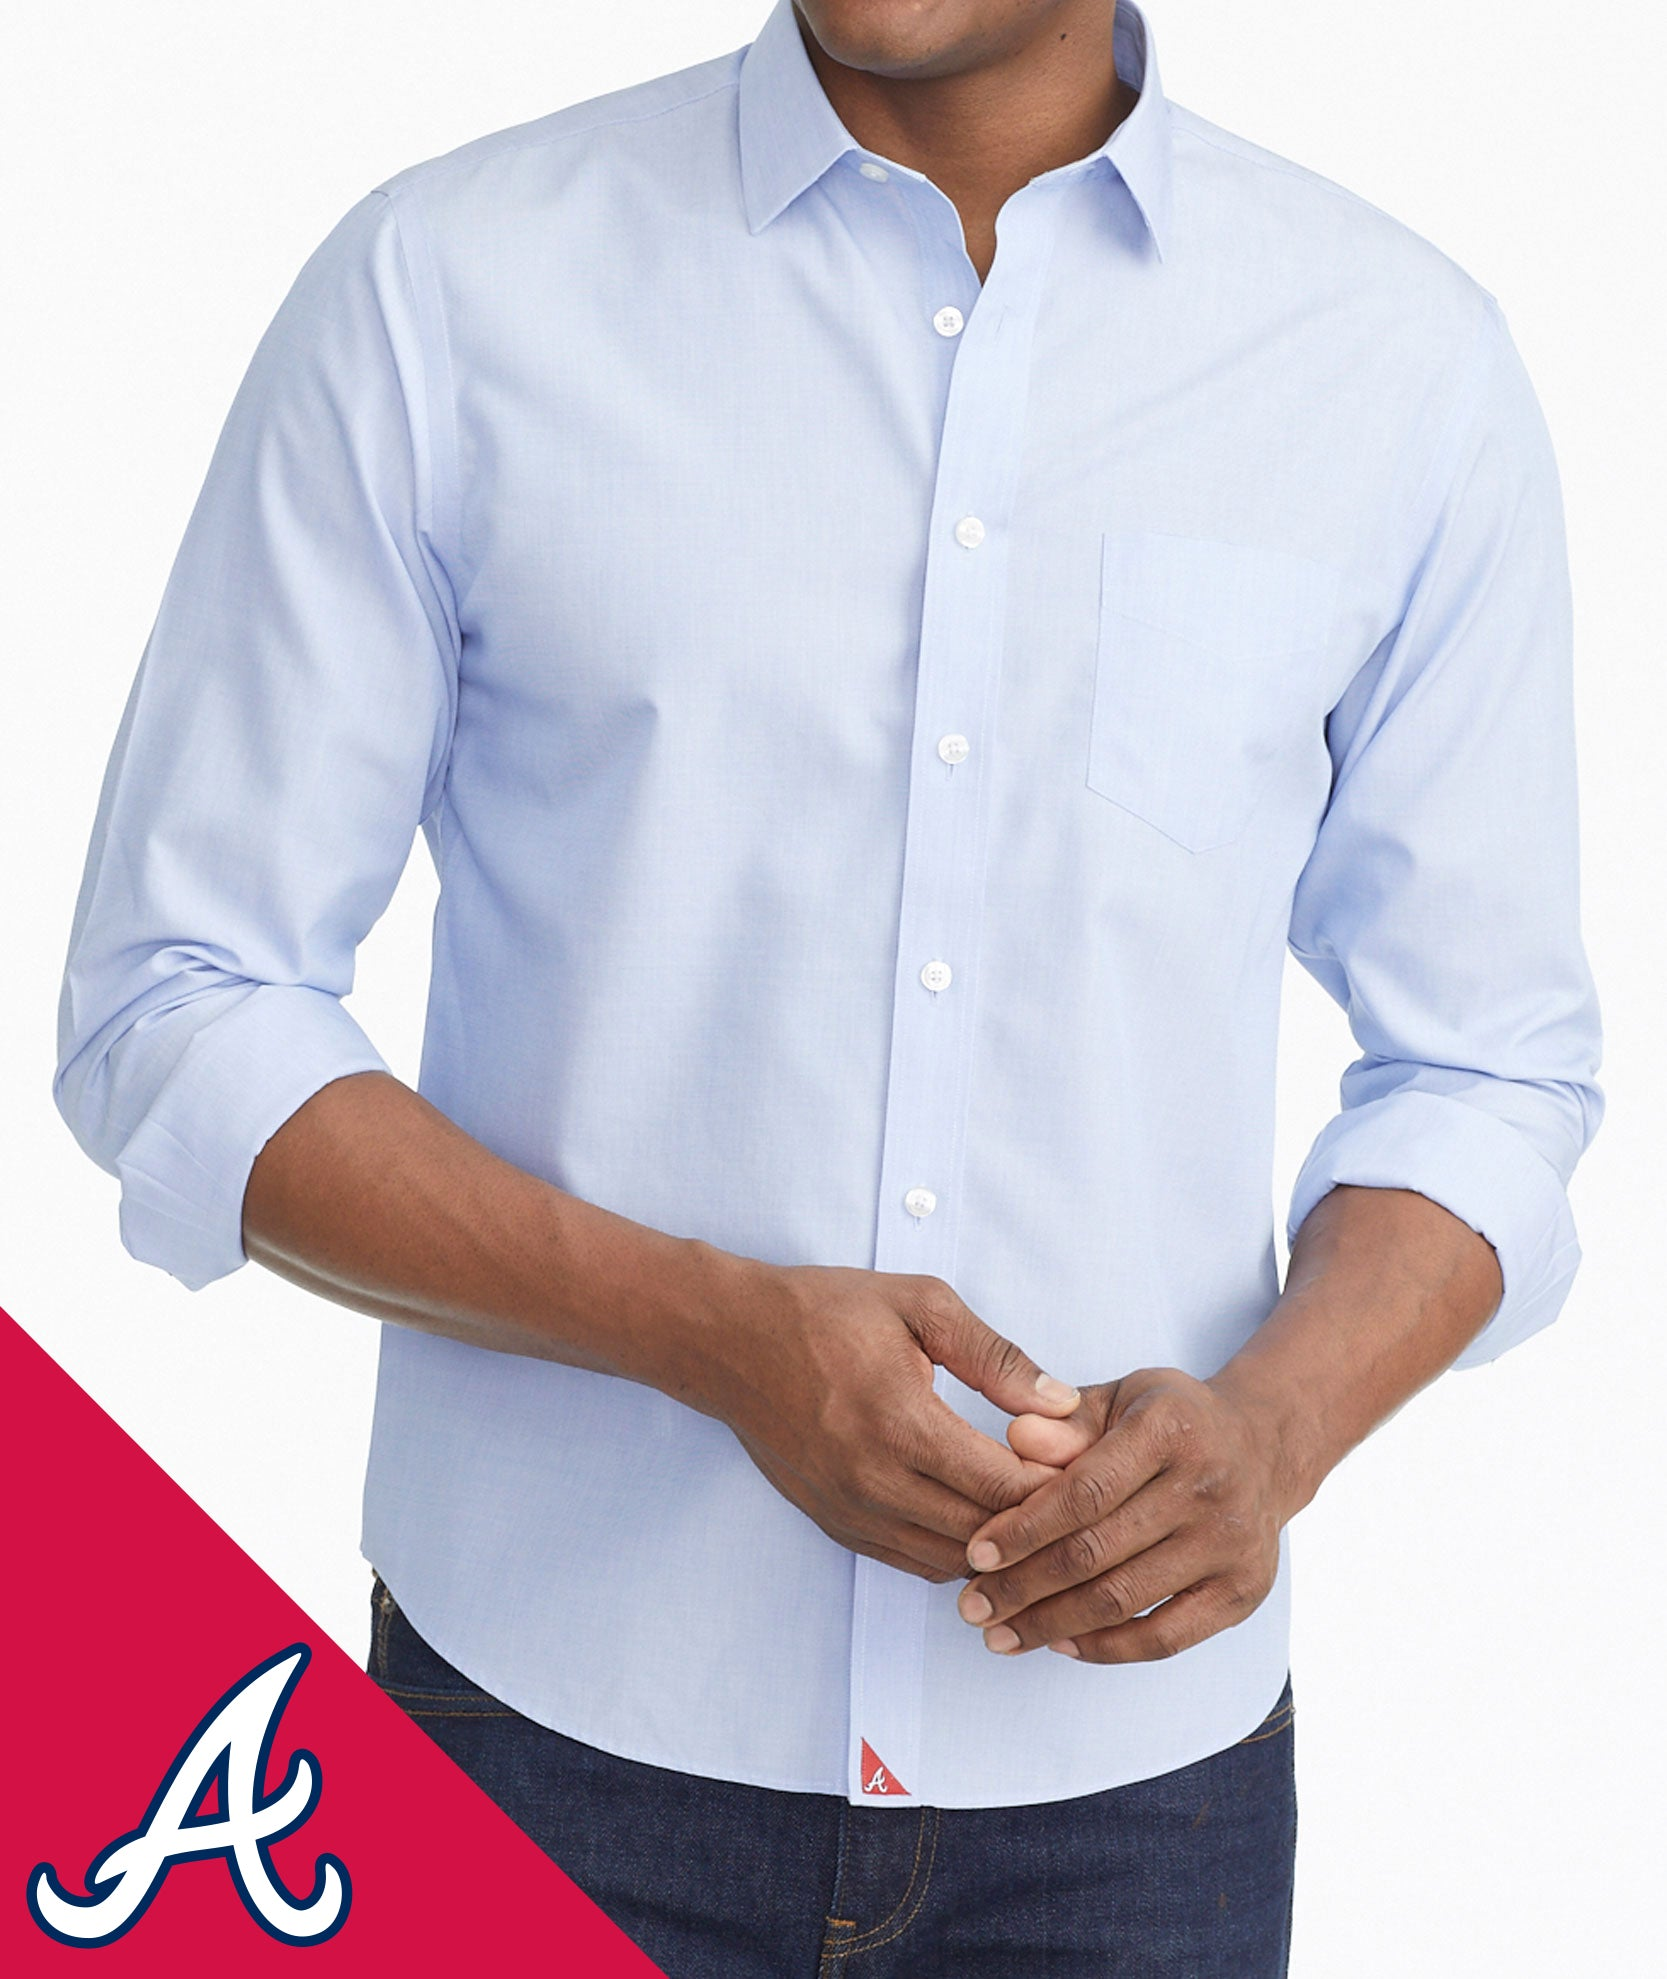 outlet store 20572 277ab Braves Signature Series Button-Down